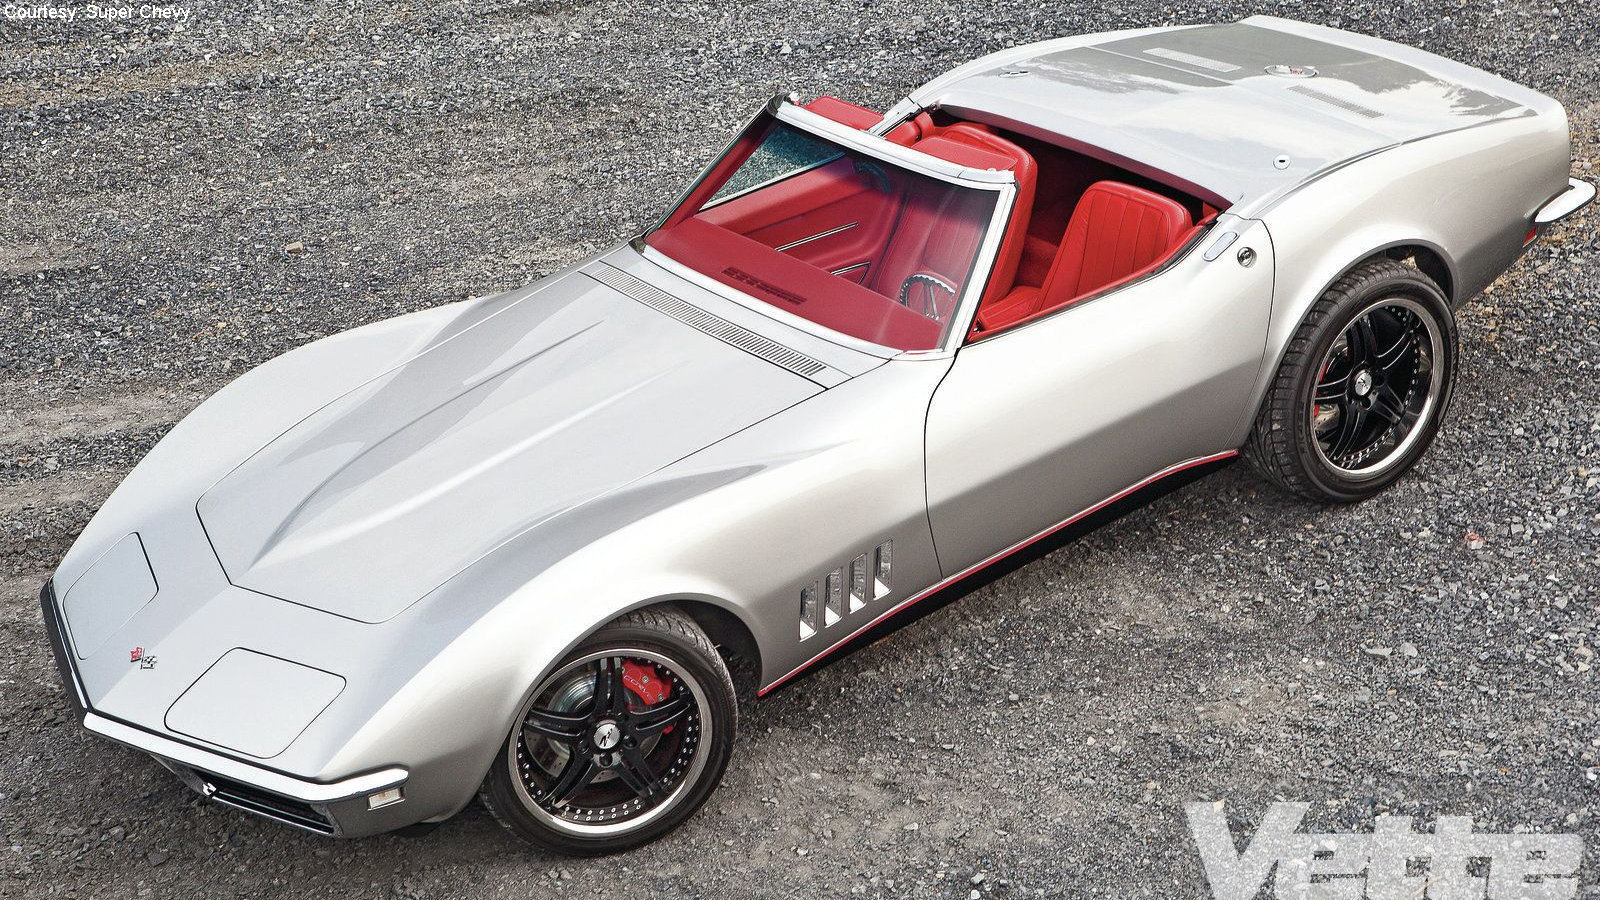 Corvette C3 from Sweden with Love